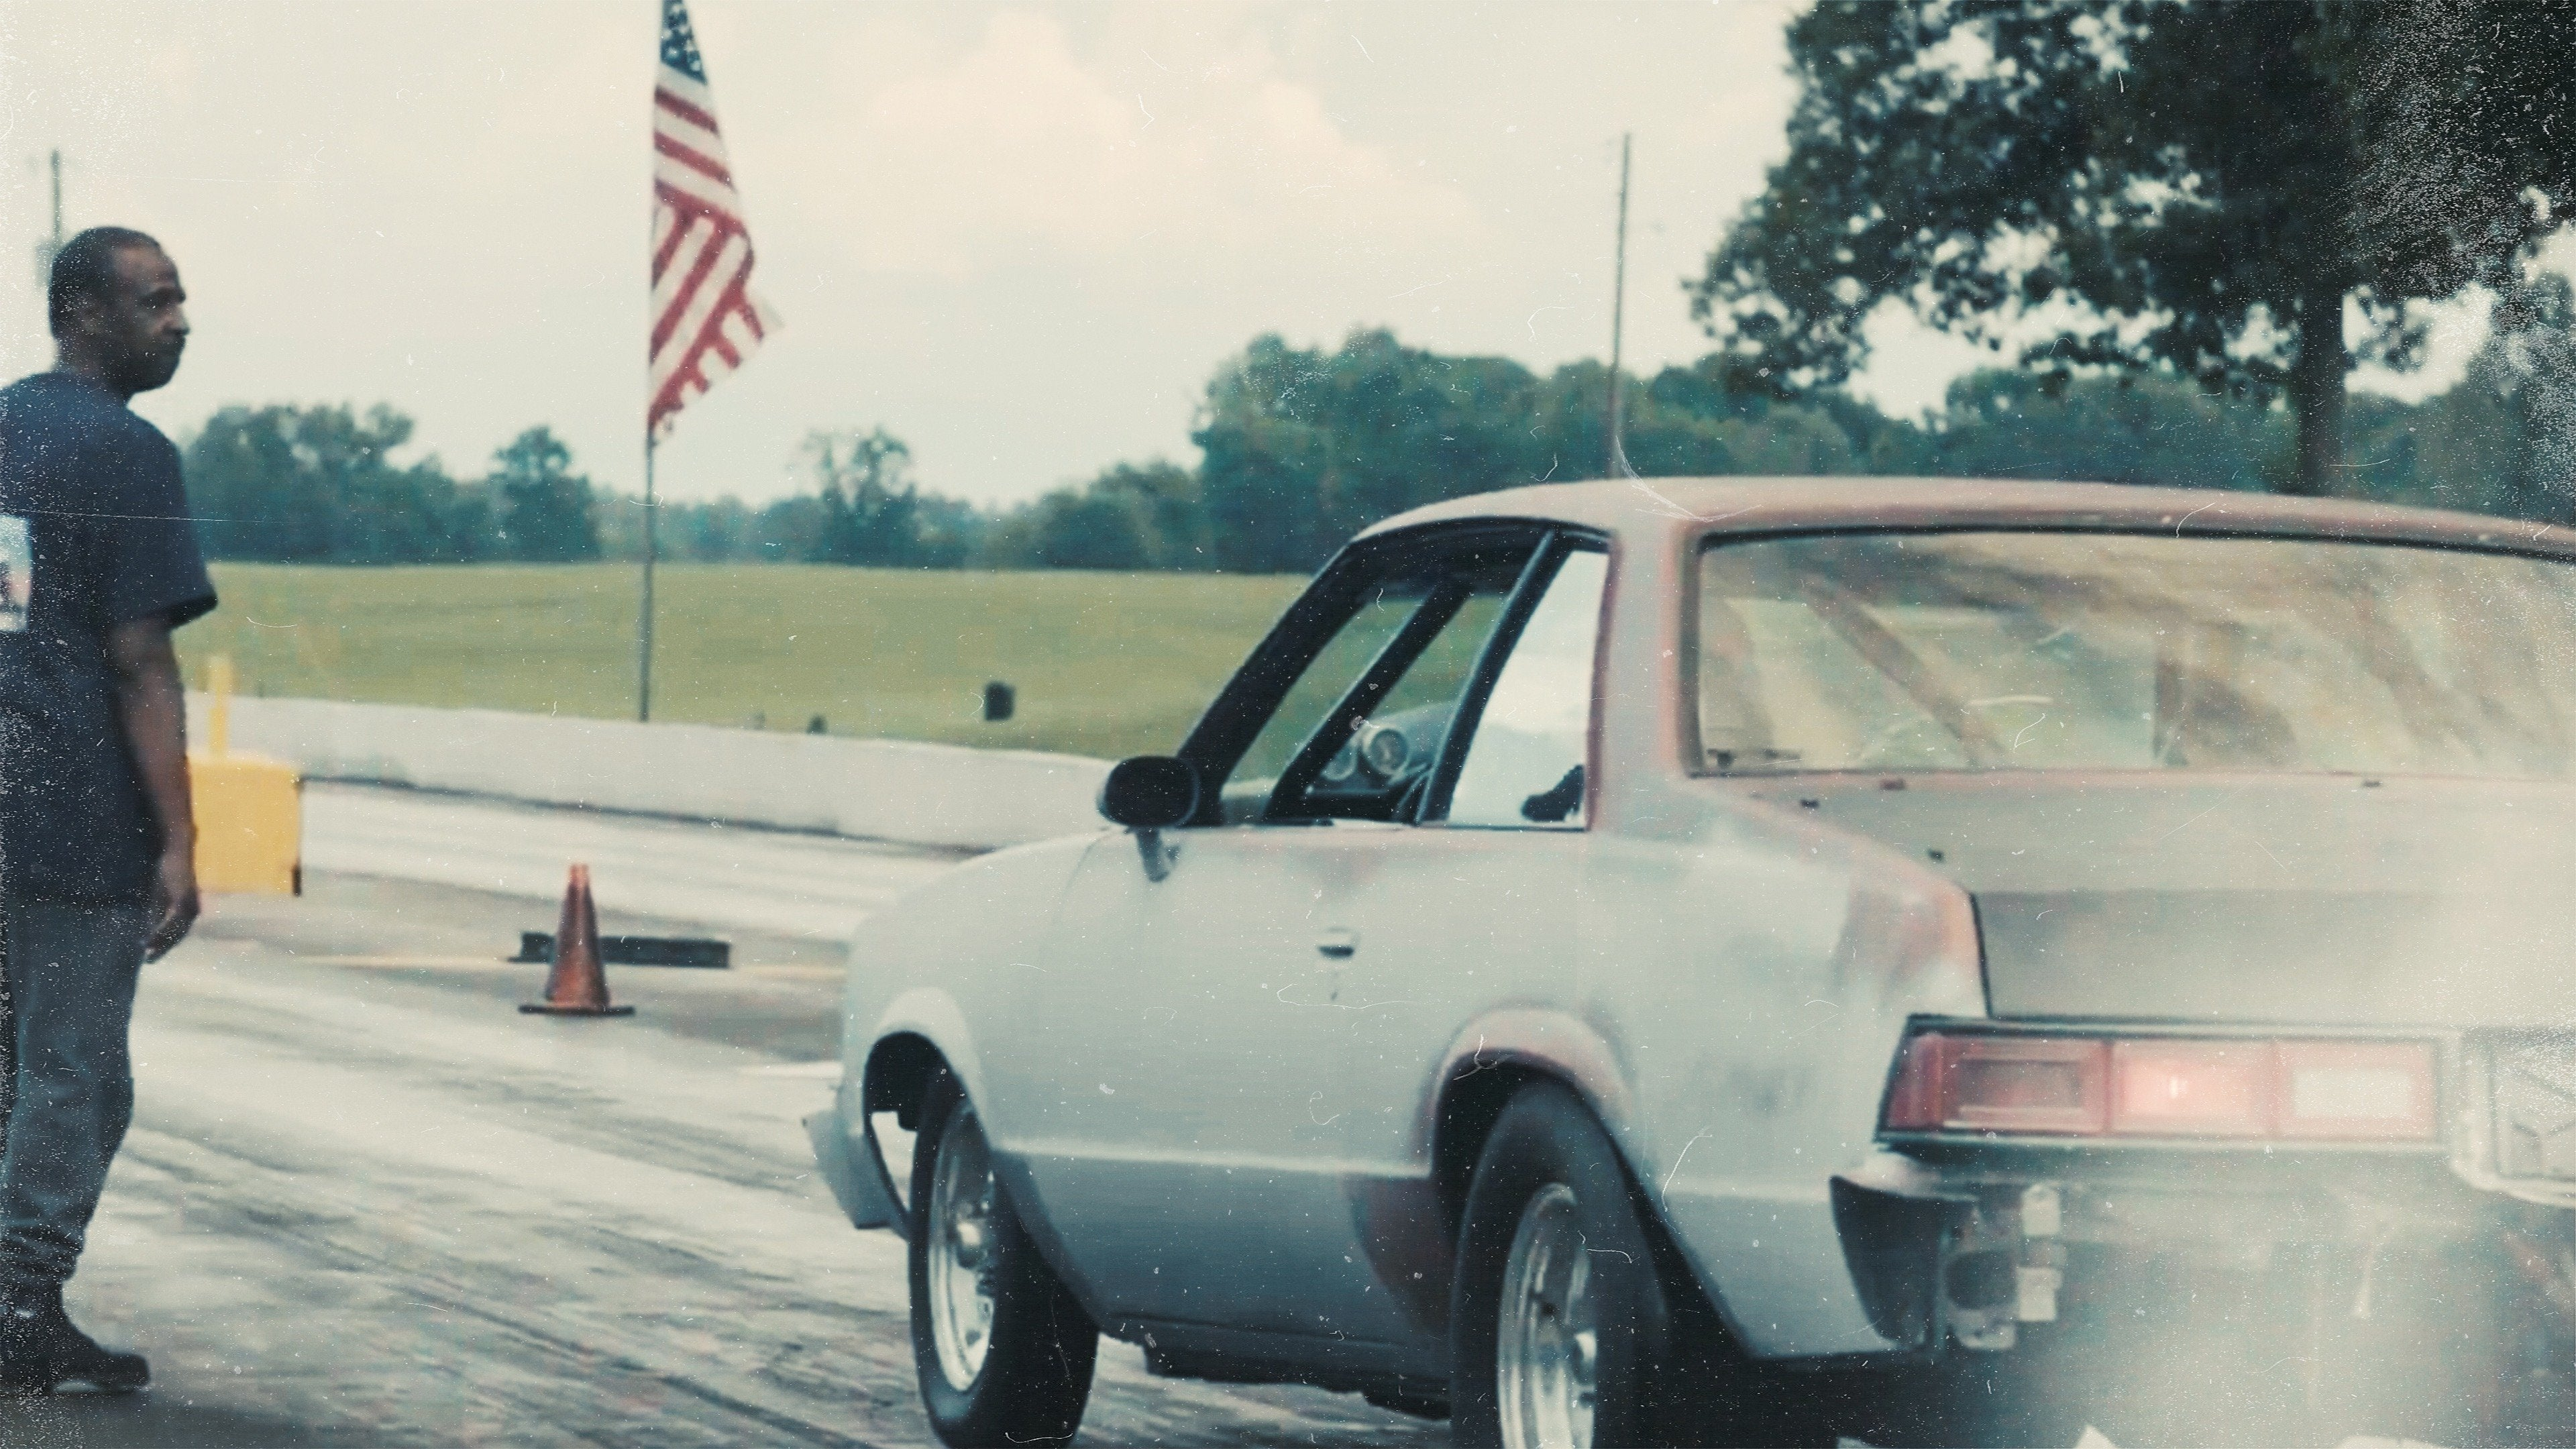 The Fastest Cars In The Dirty South